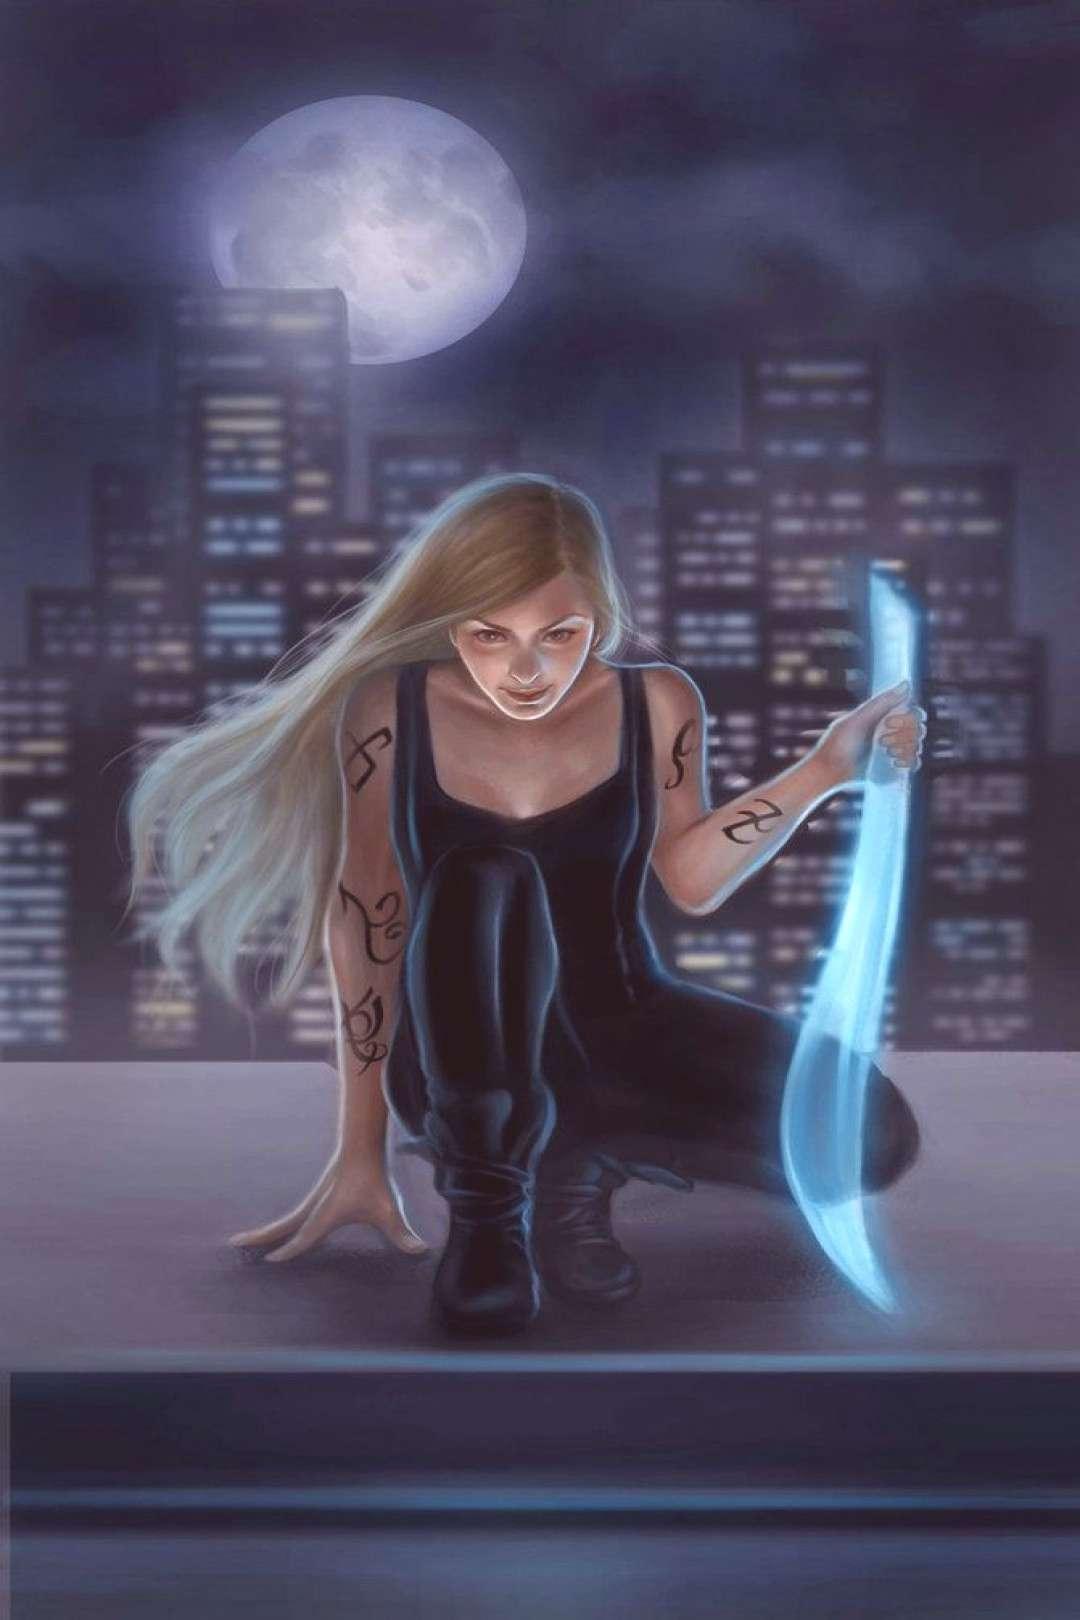 Emma Carstairs holding a seraph blade, because Cortana wouldnt be as cool as a light source. Emma